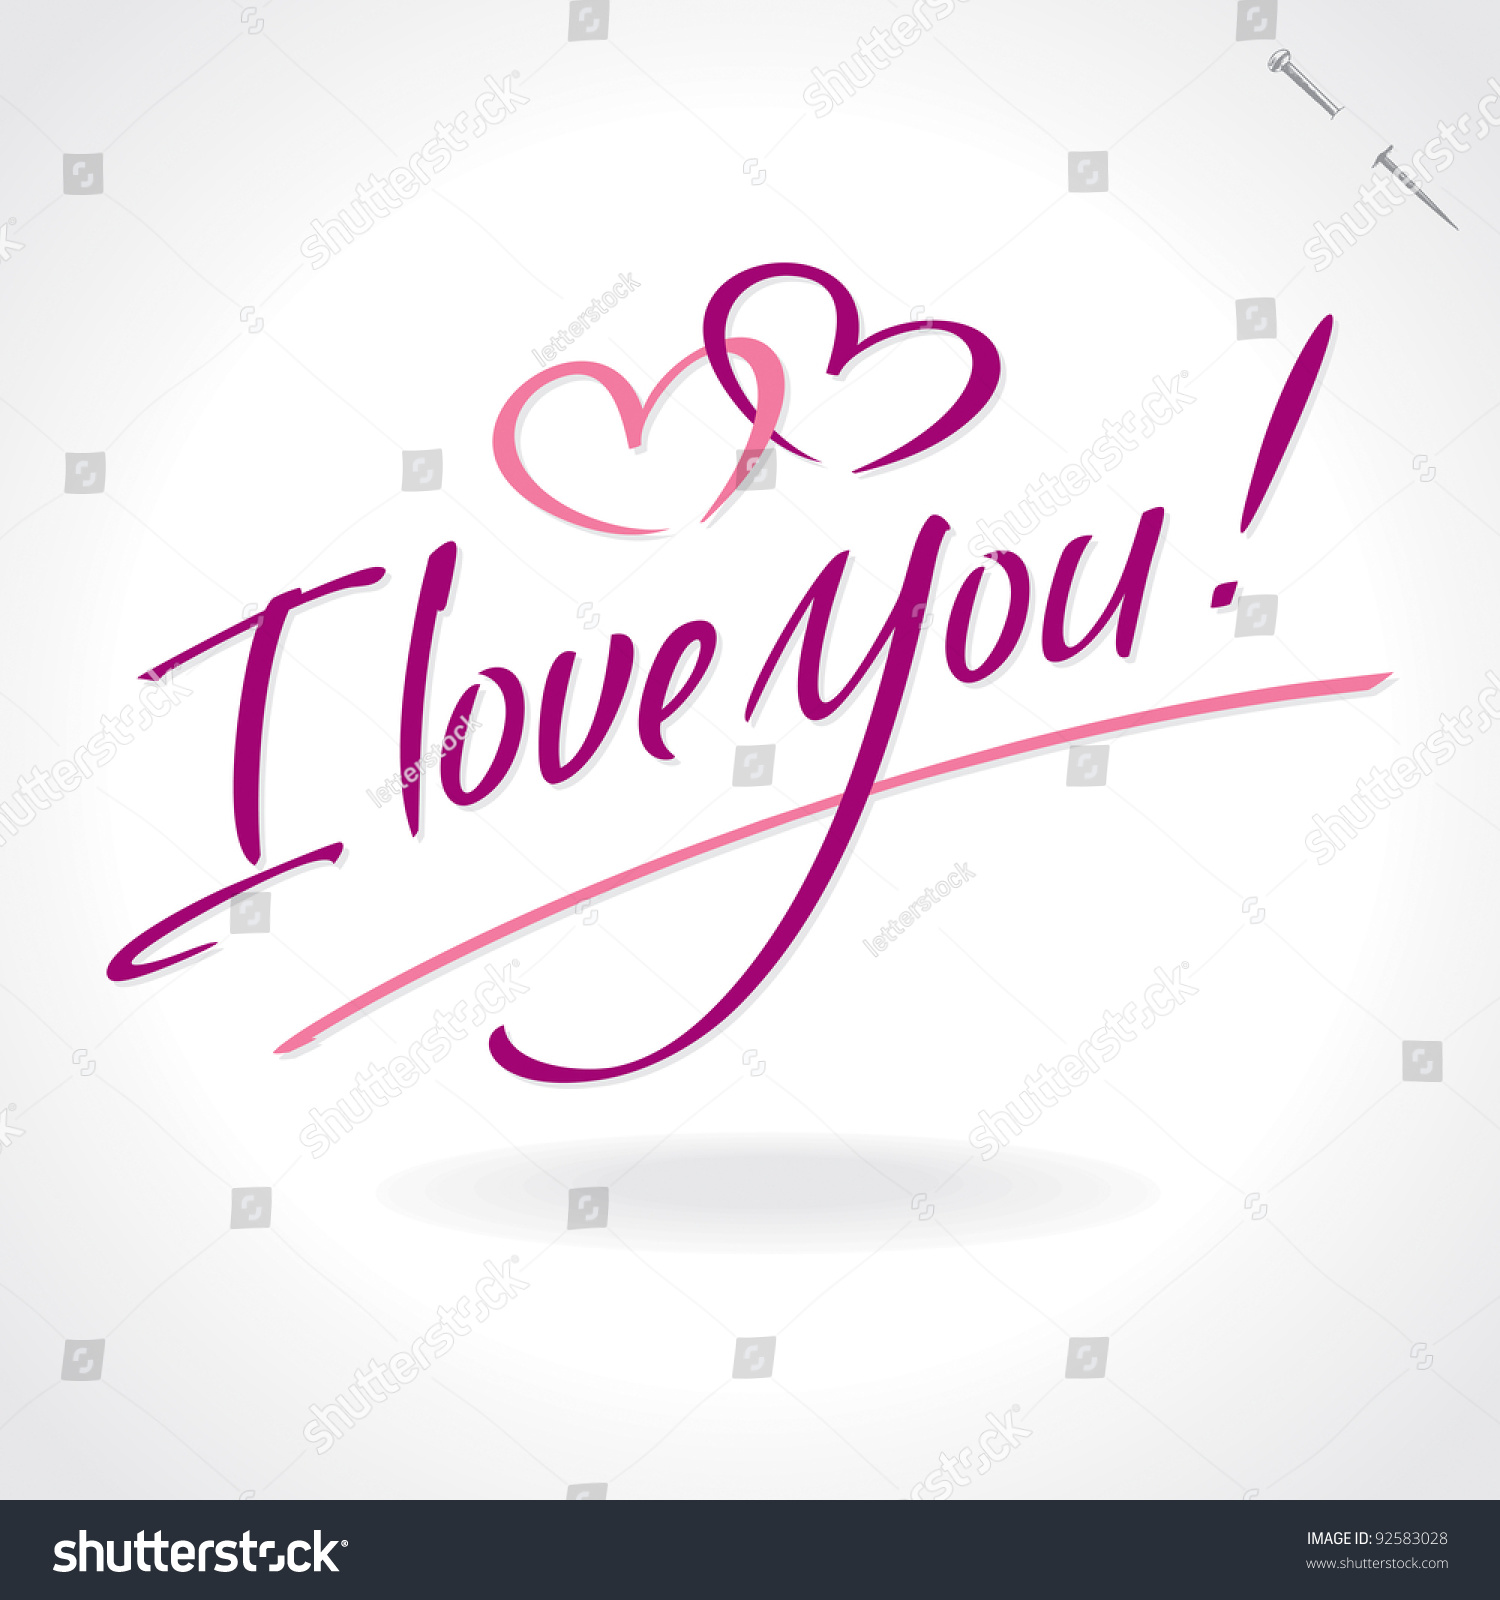 I love you hand lettering handmade stock vector 92583028 I love you calligraphy